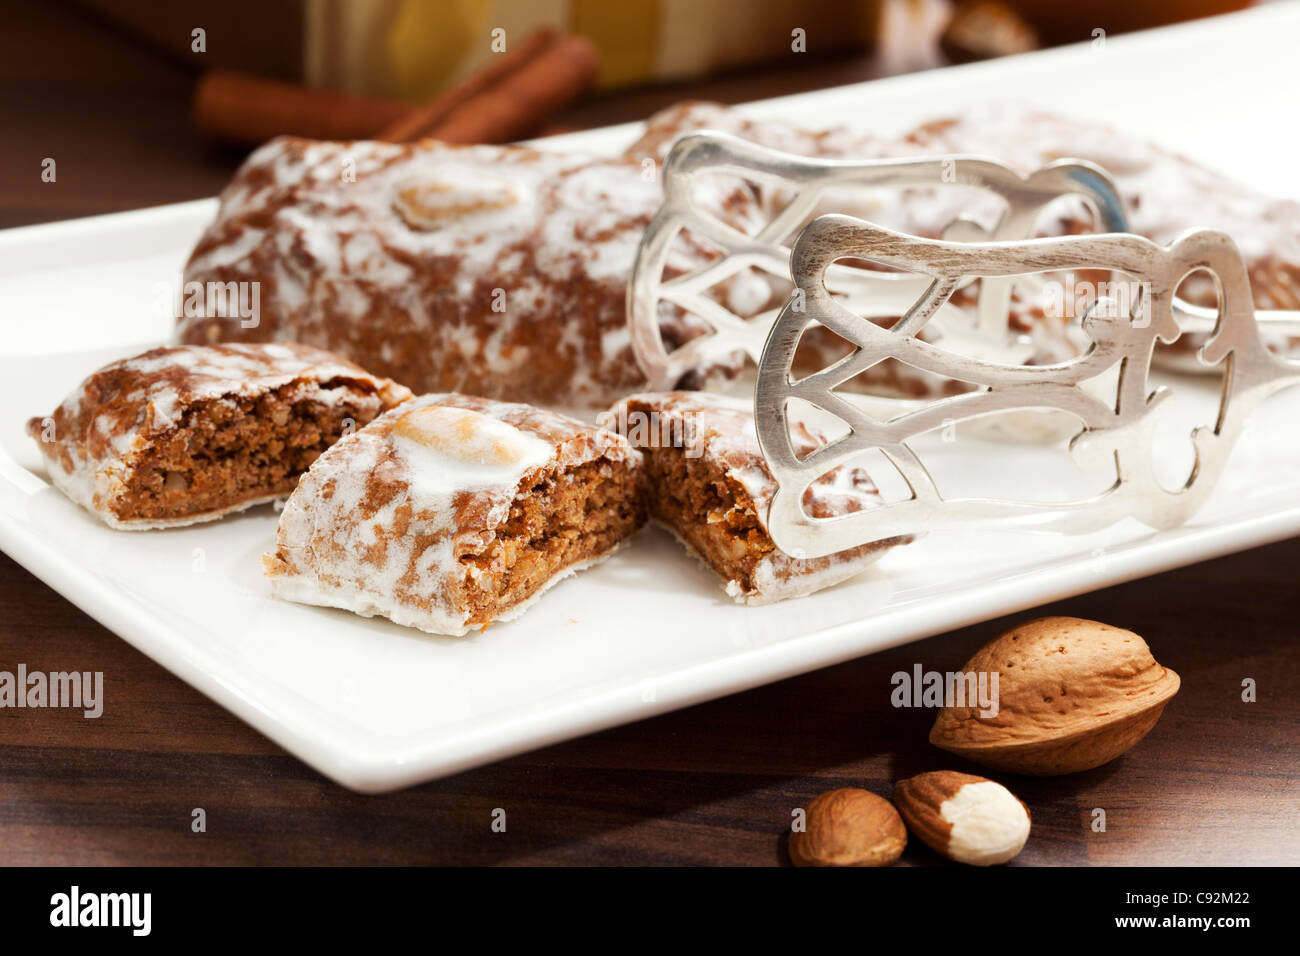 Traditional christmas gingerbread cookies from Nuremberg on a plate with silver pastry tongs - Stock Image